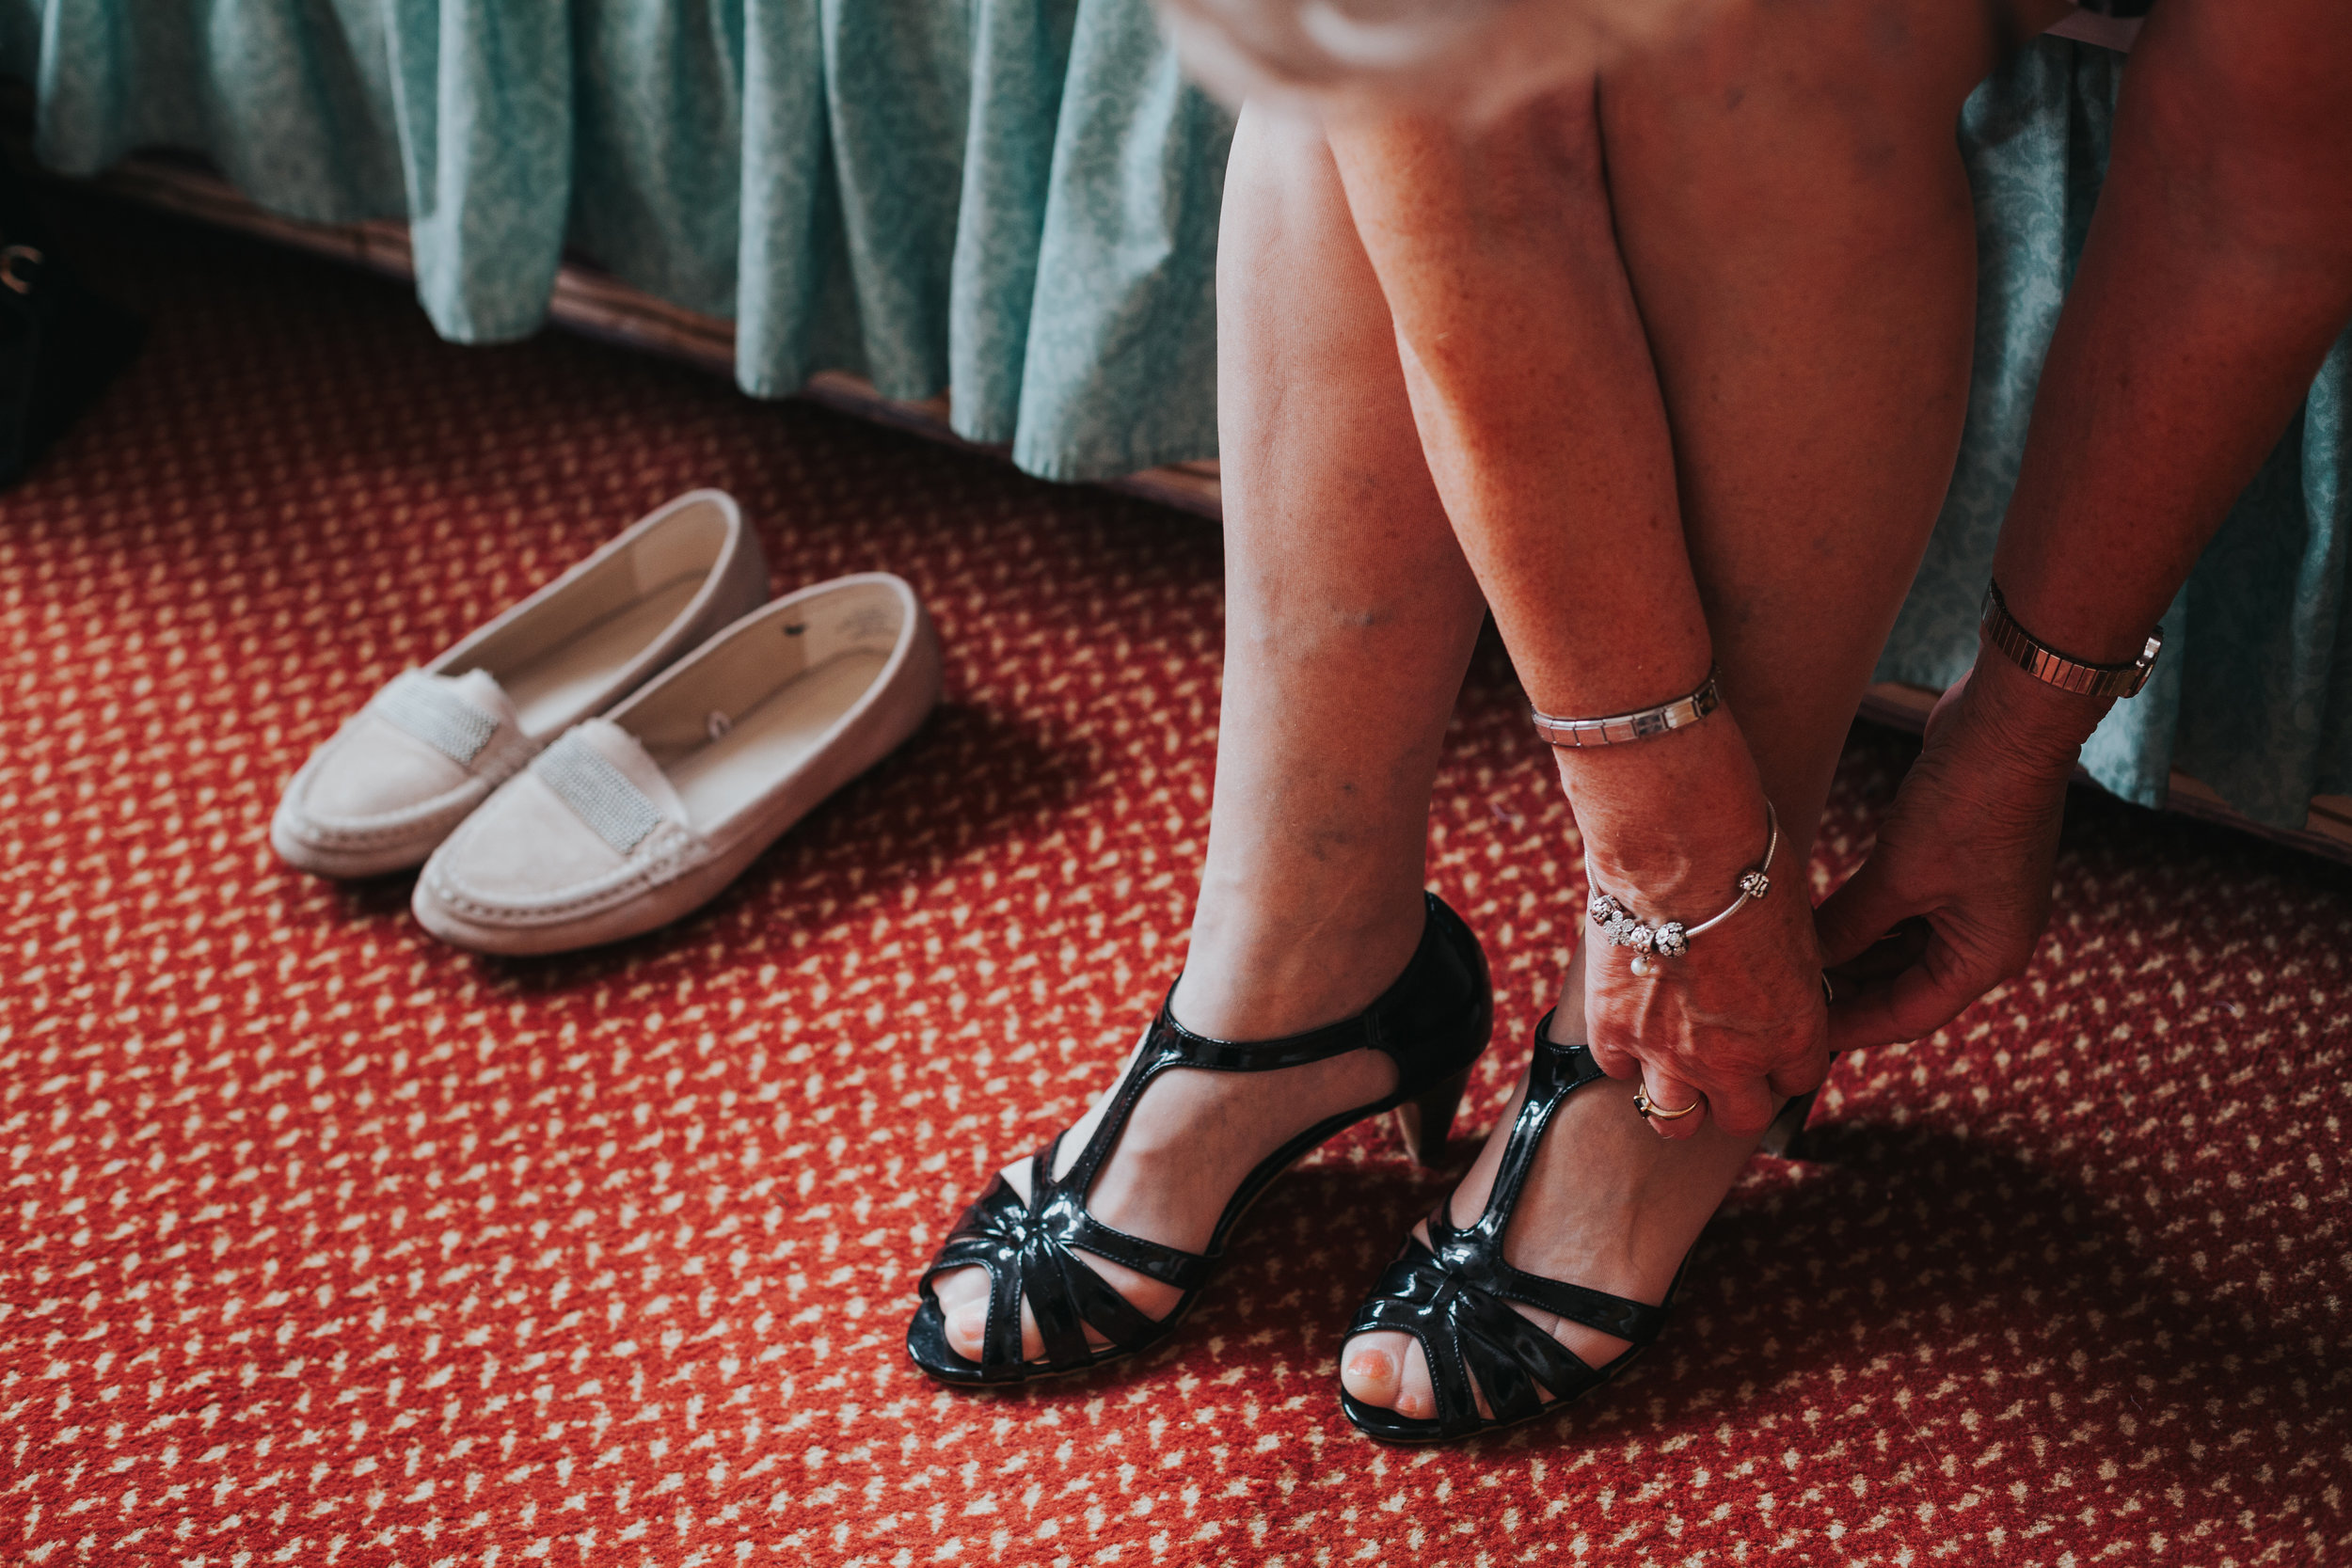 Nan swaps her slippers for her heeled wedding shoes.